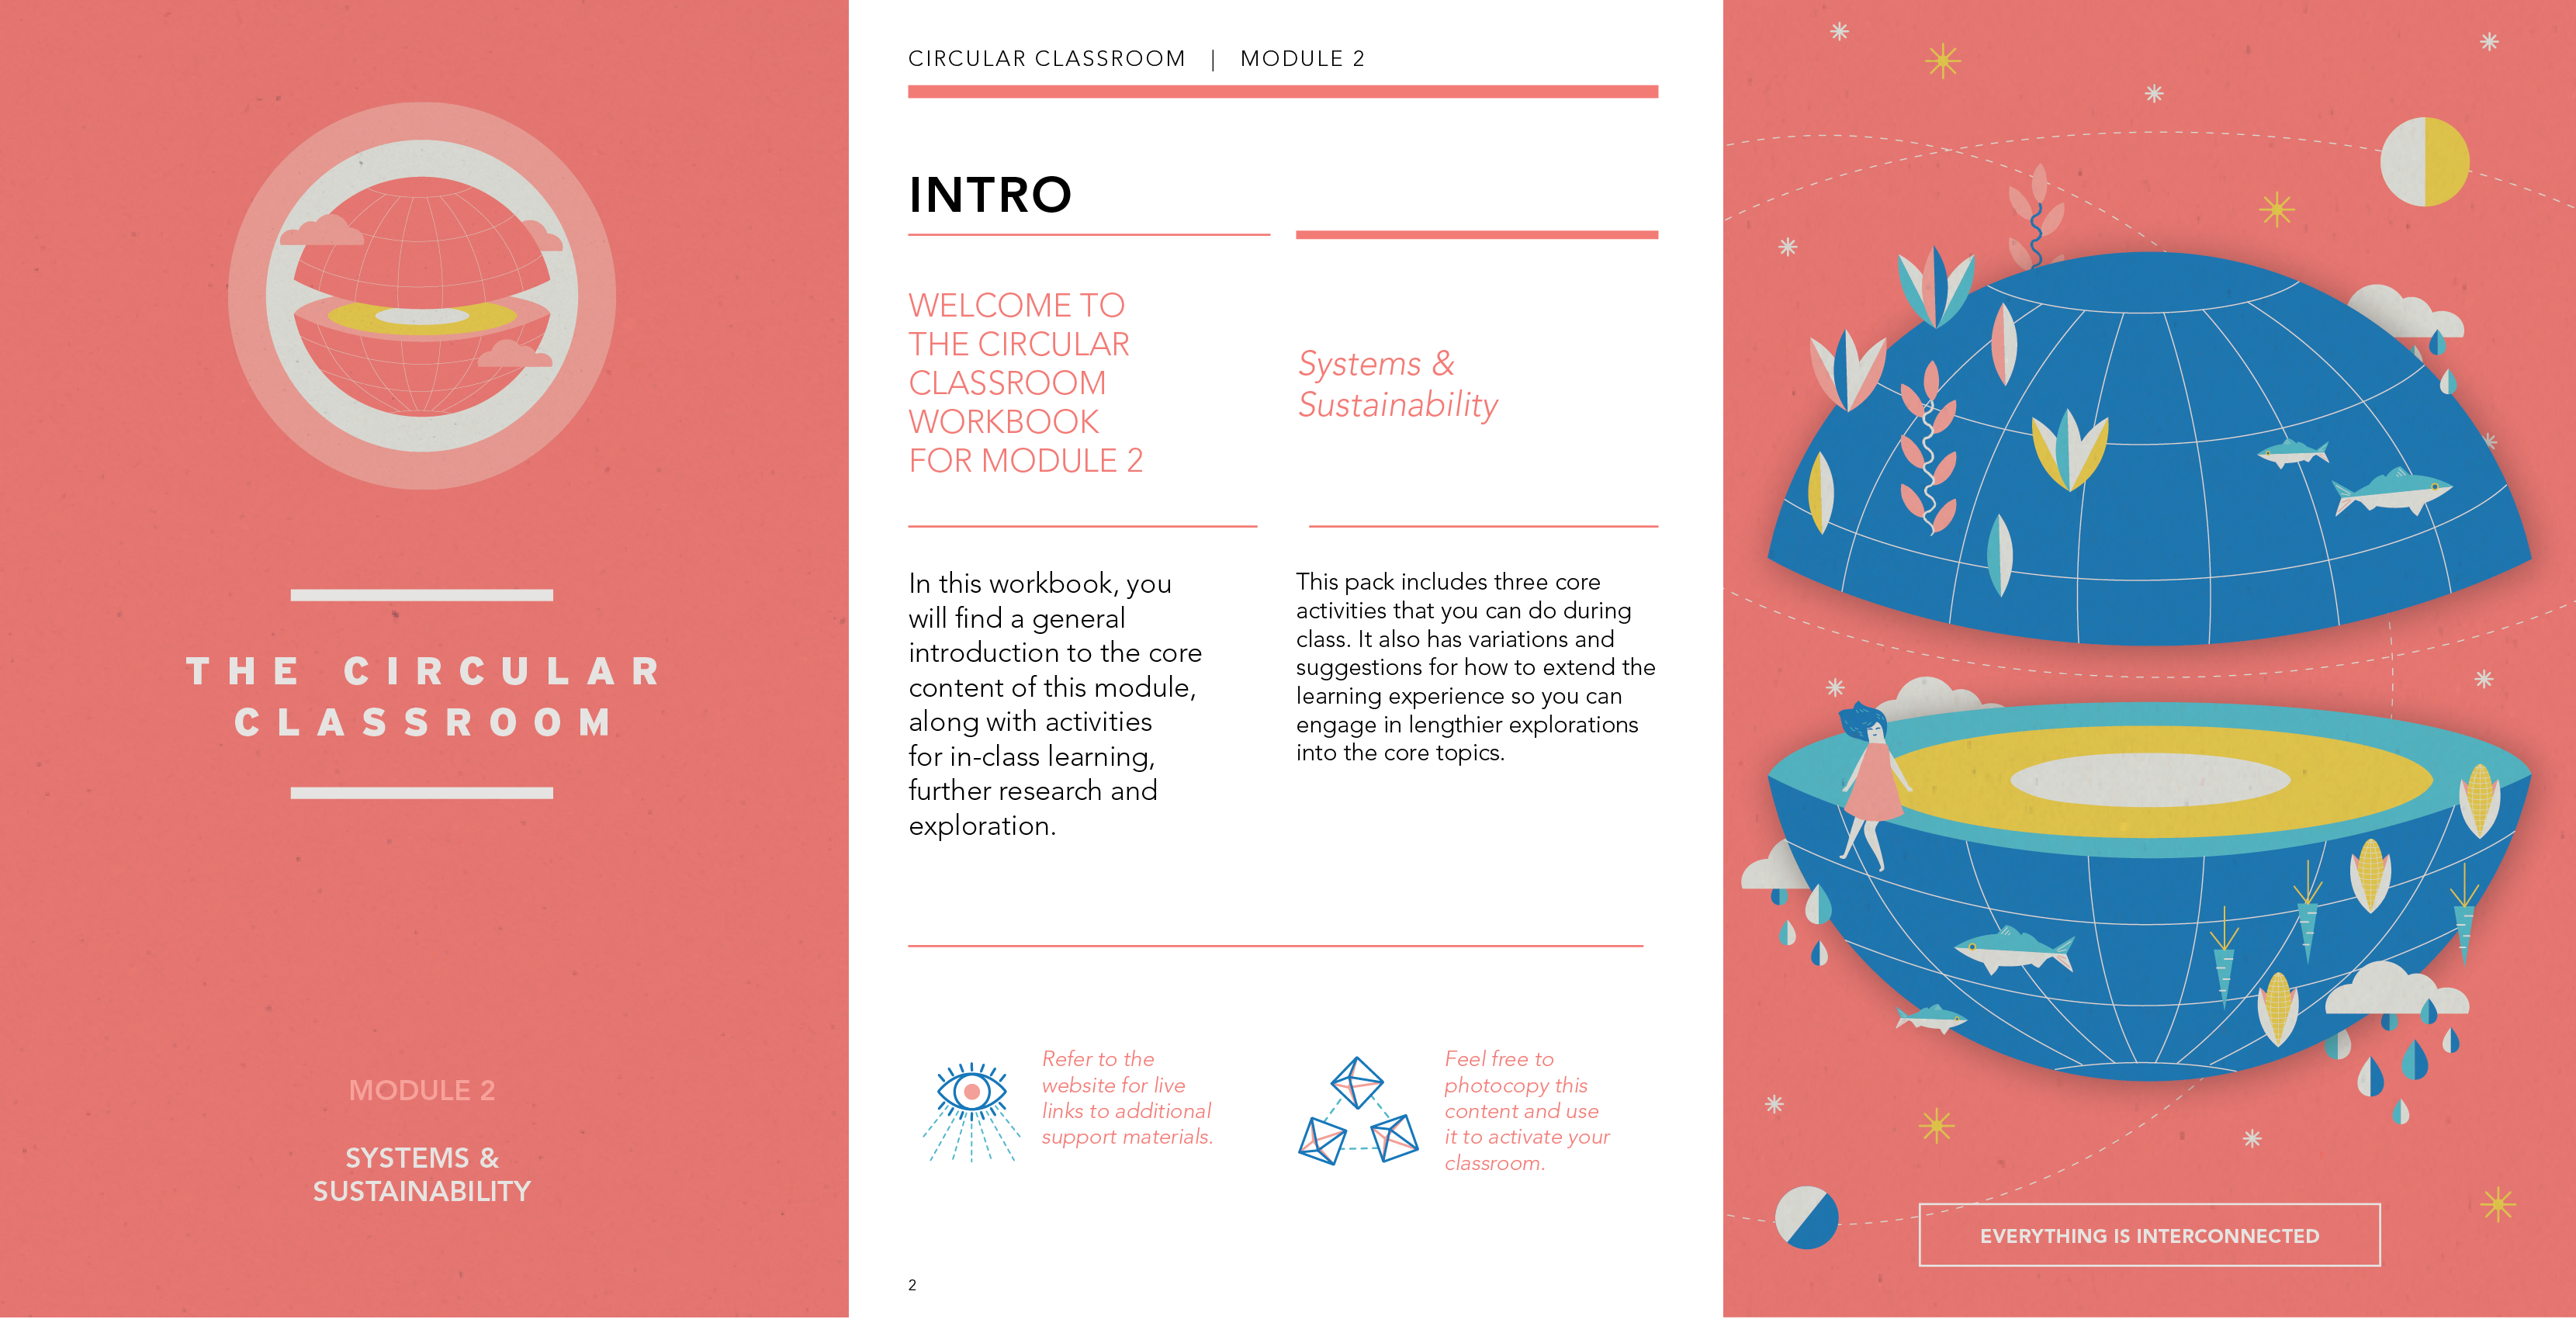 The Circular Classroom: a Free Toolkit for Activating the